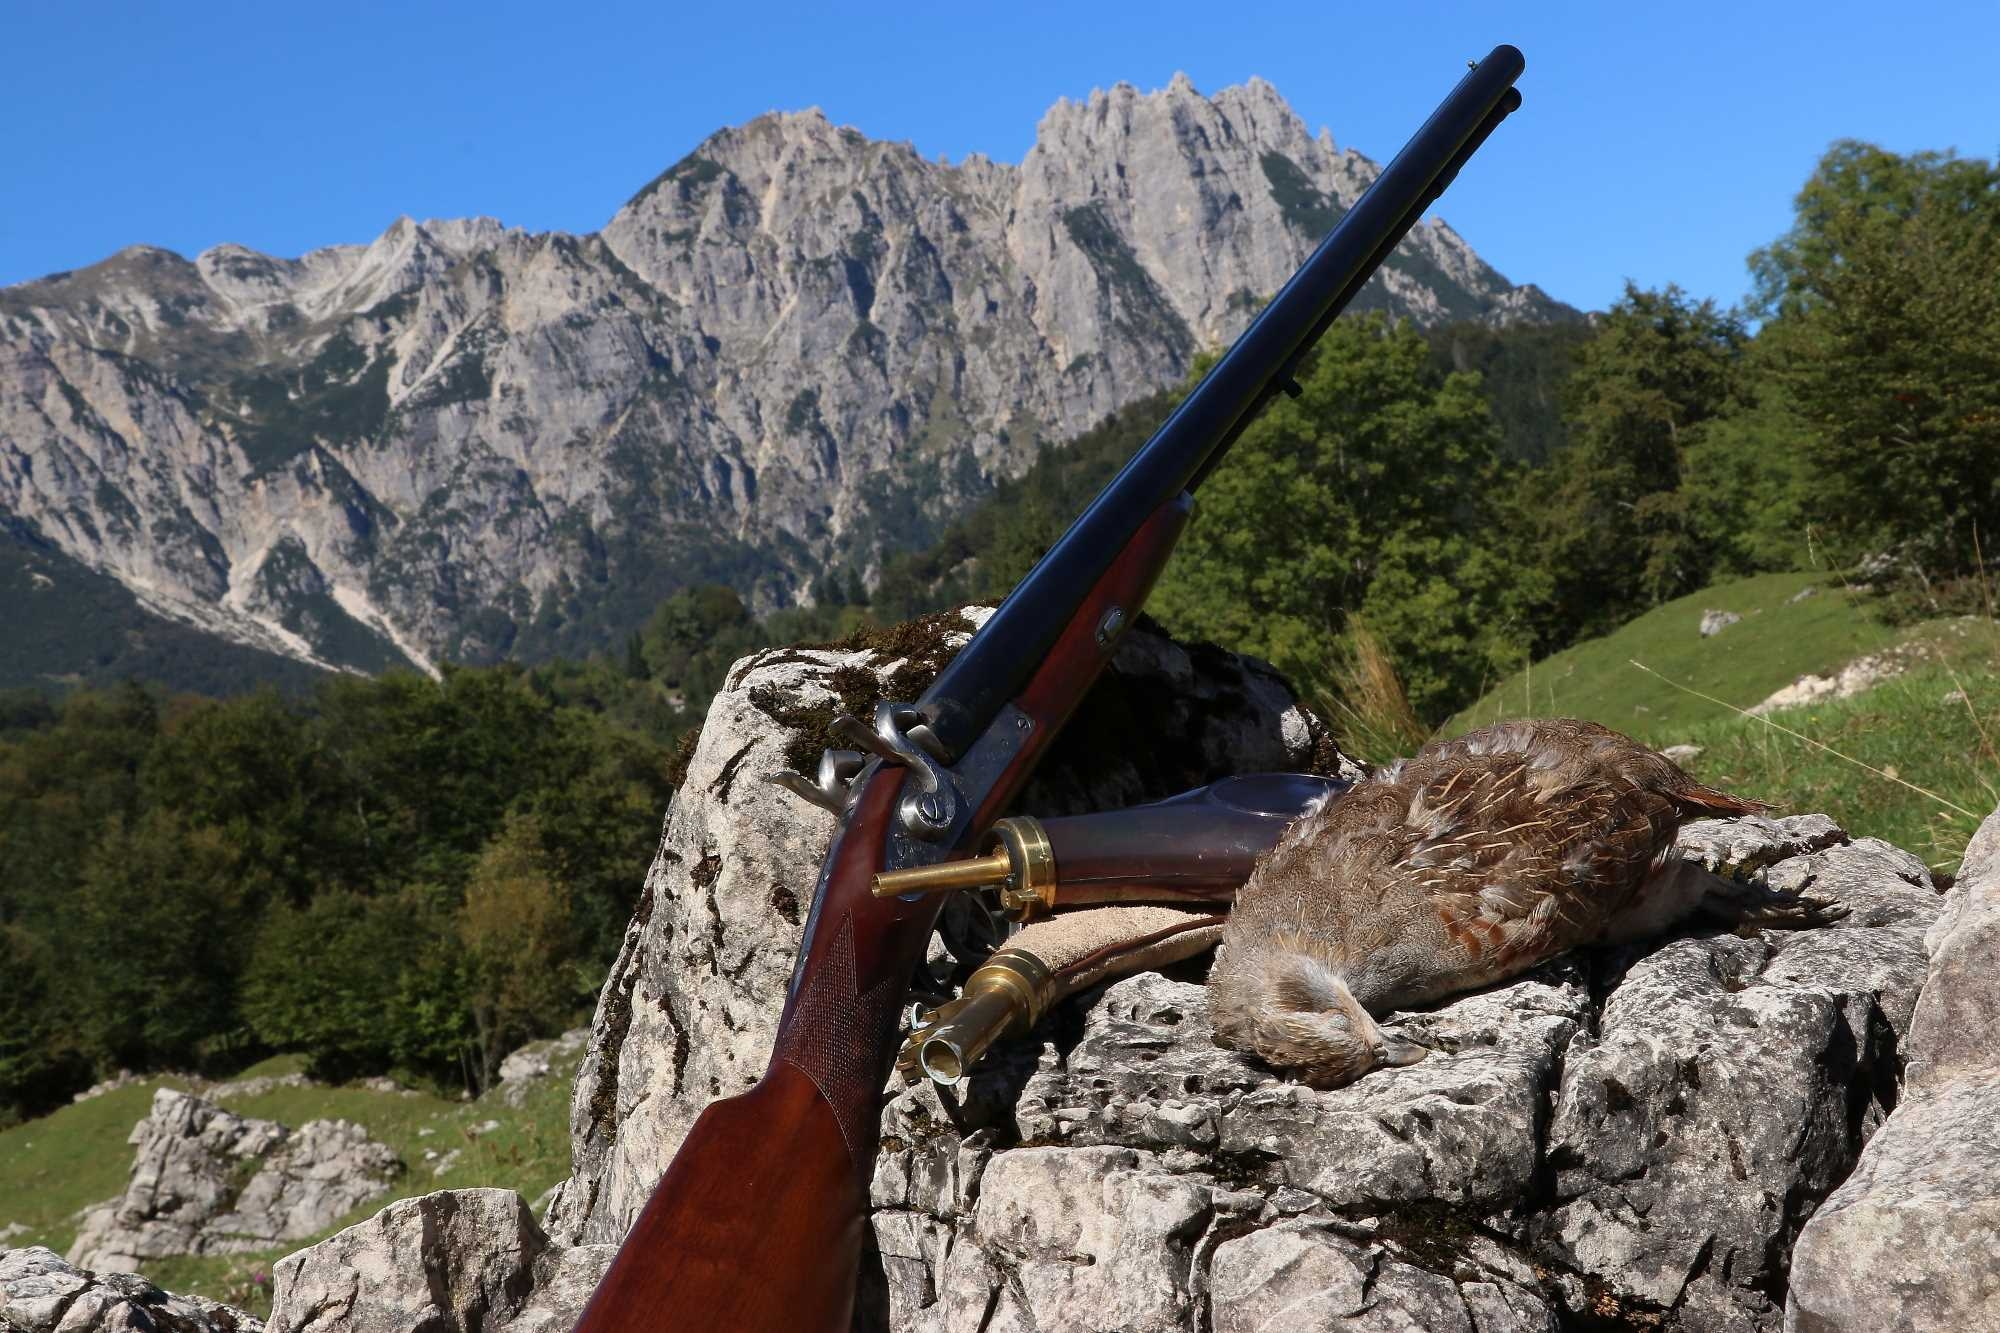 The 20 ga side-by-side shotgun by Davide Pedersoli with grey partridge